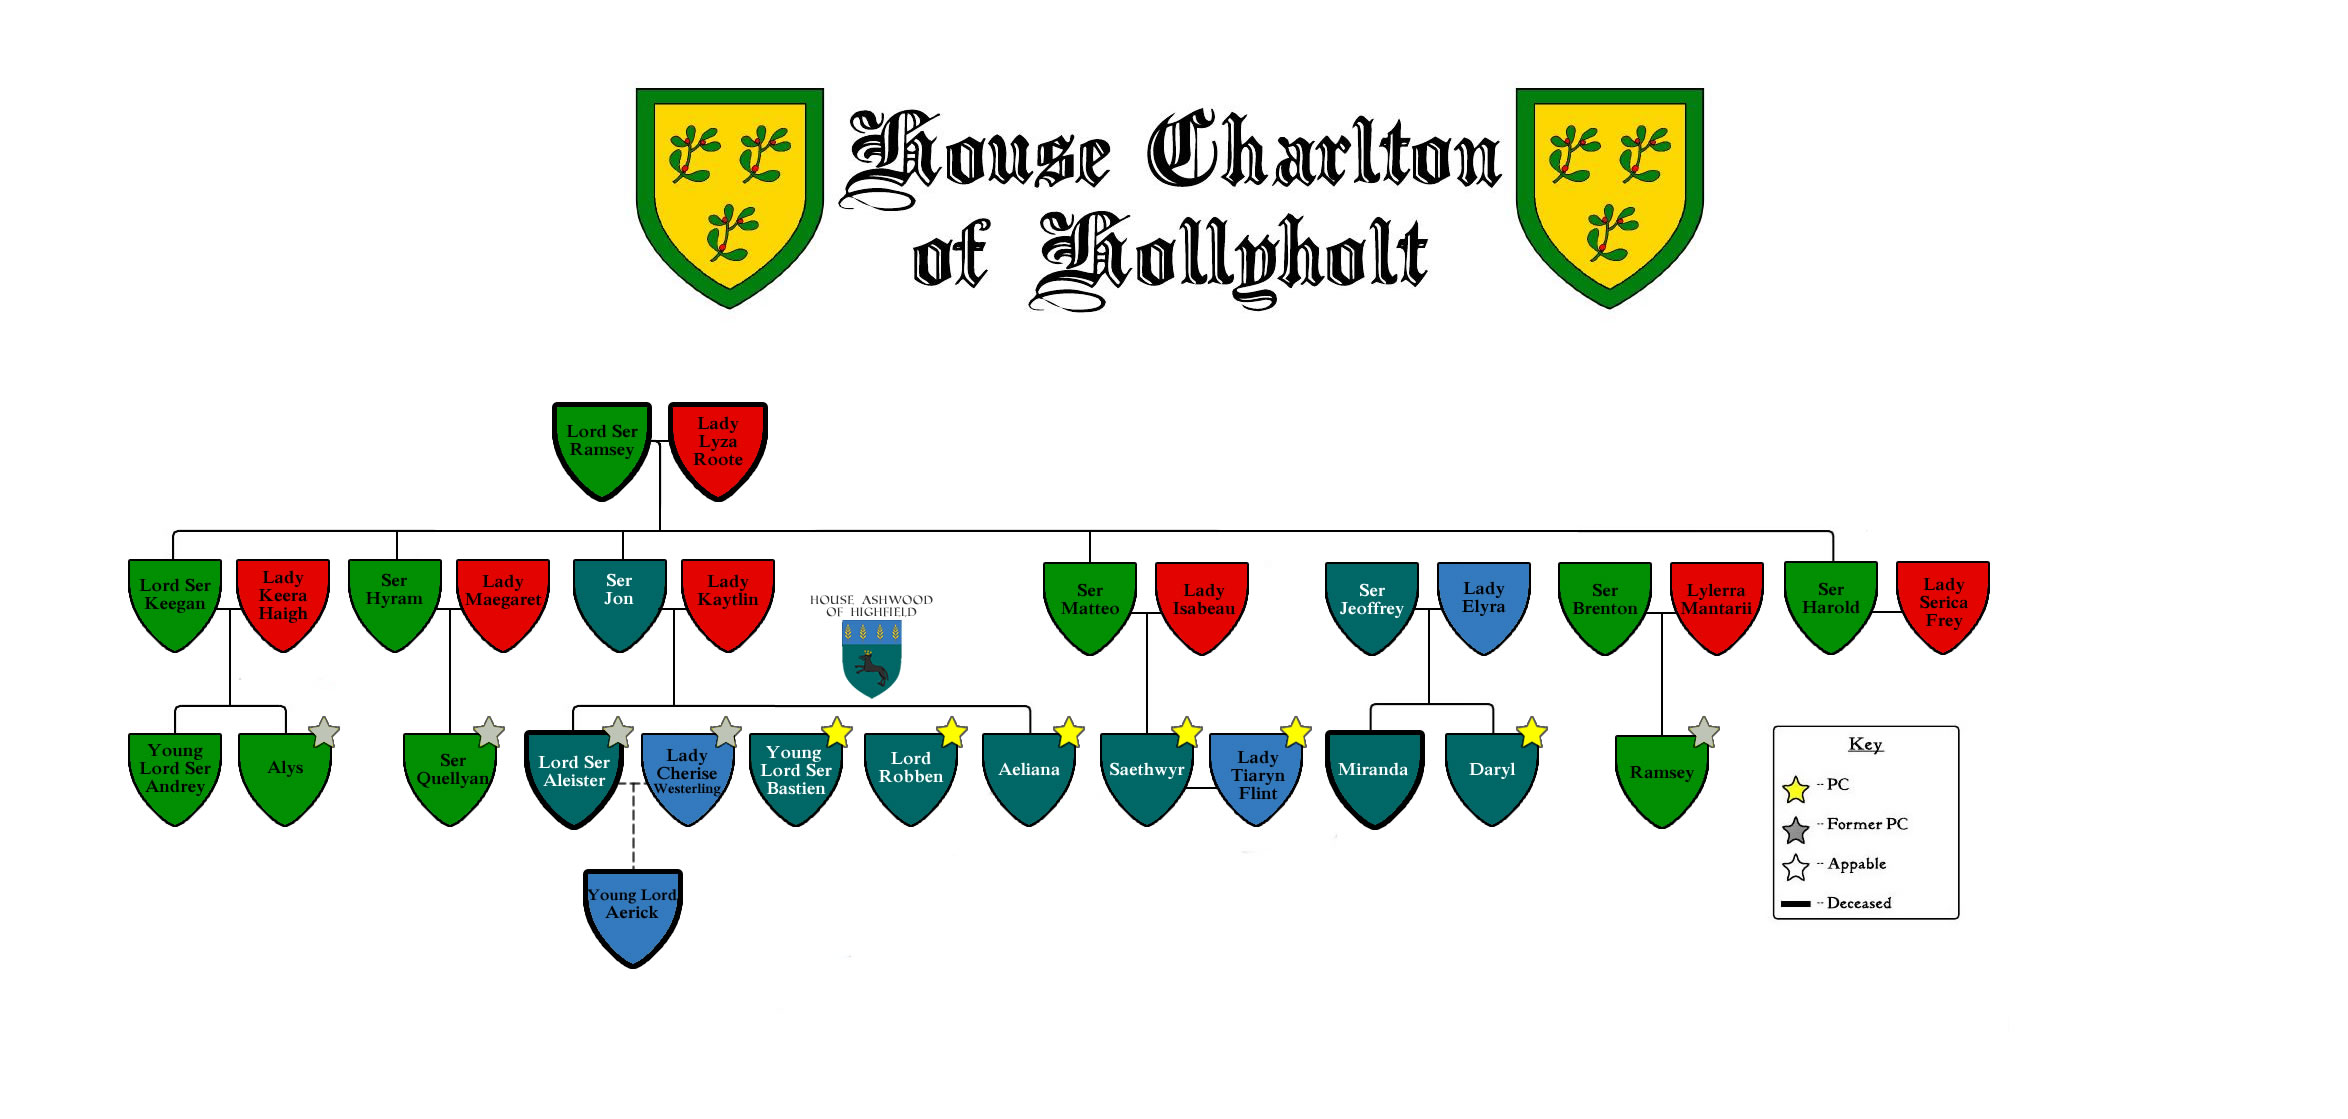 CharltonTree.jpg